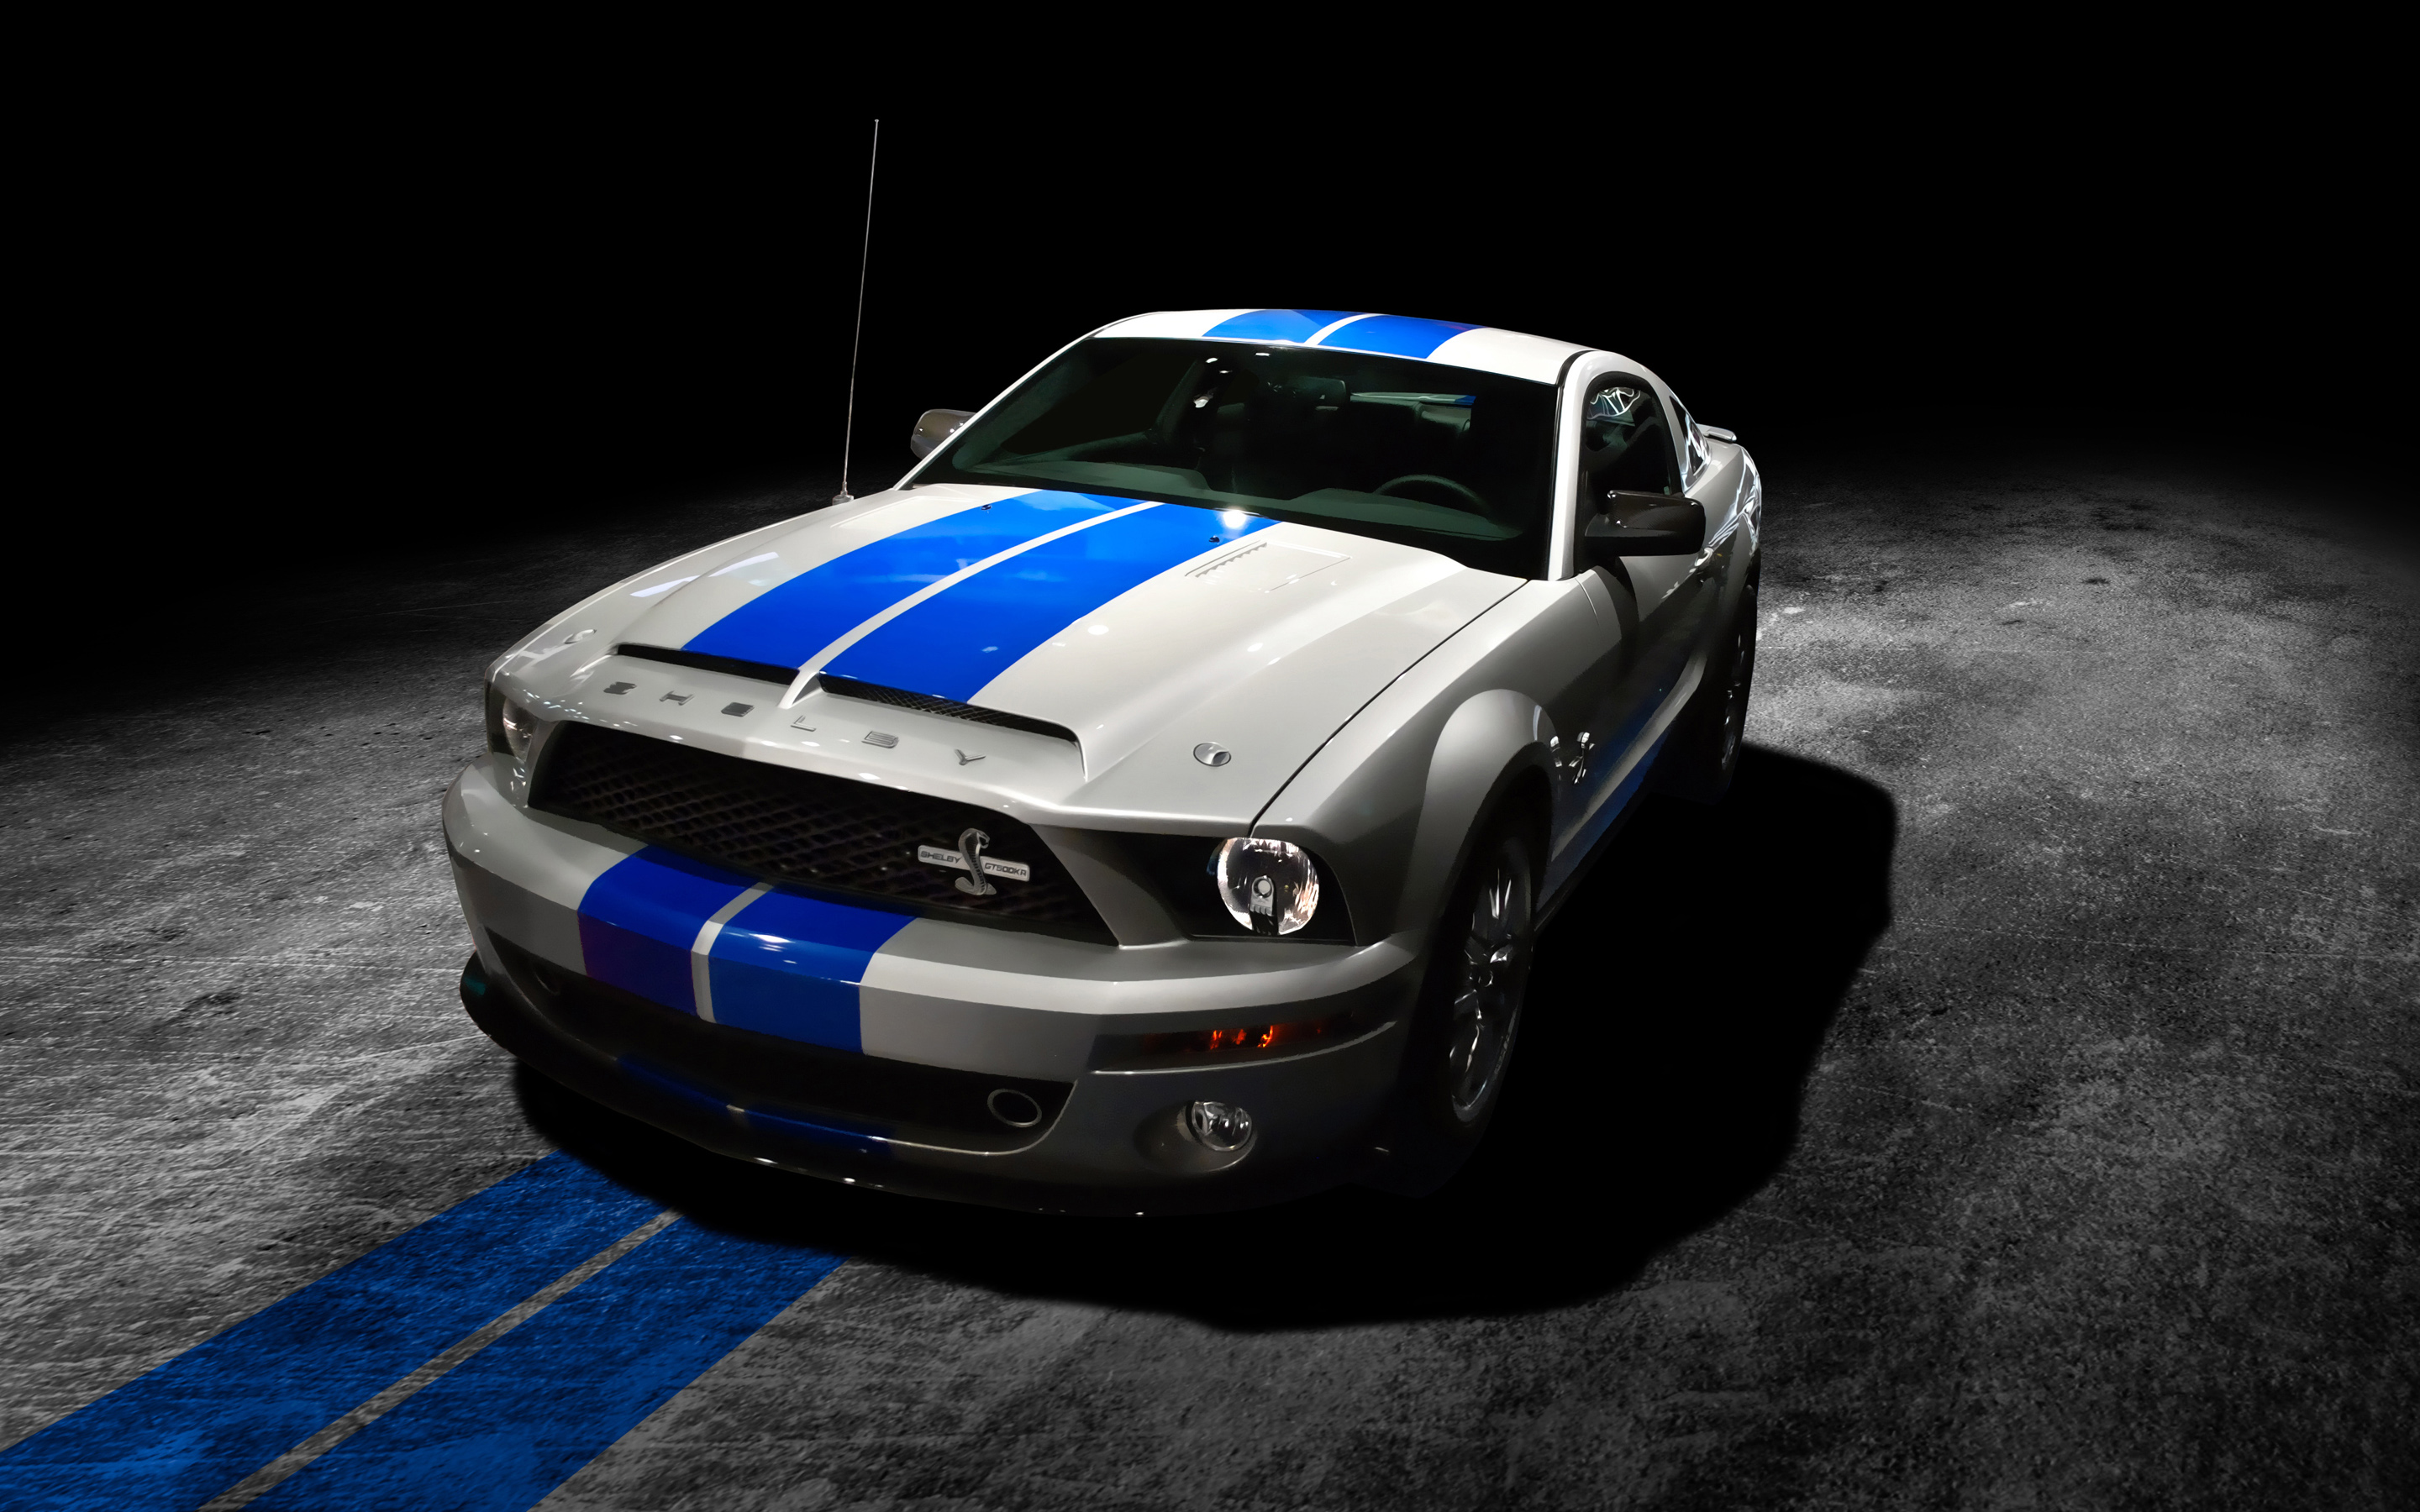 Ford Mustang Shelby GT500 2013 Wallpapers HD Wallpapers 2880x1800